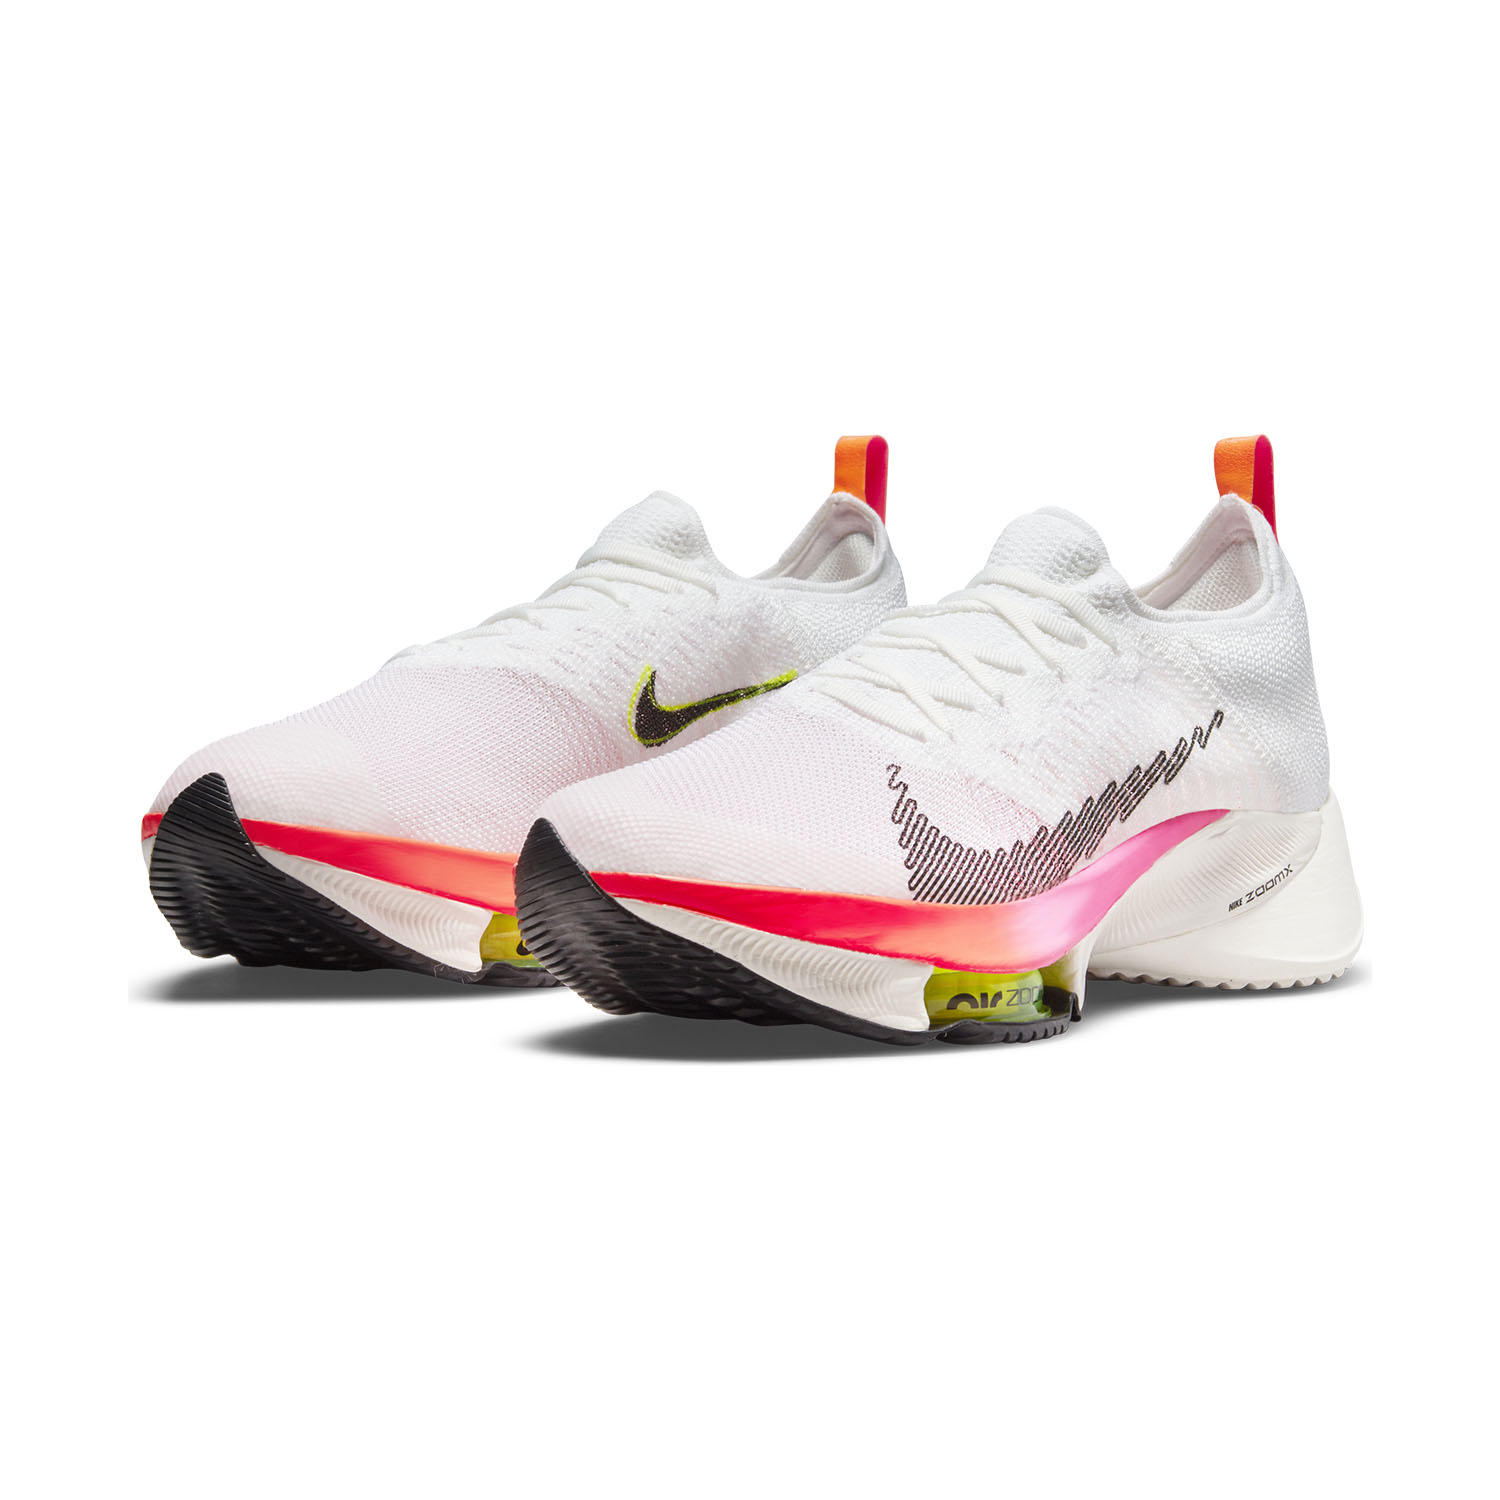 Nike Air Zoom Tempo Next% - White/Black/Washed Coral/Pink Blast